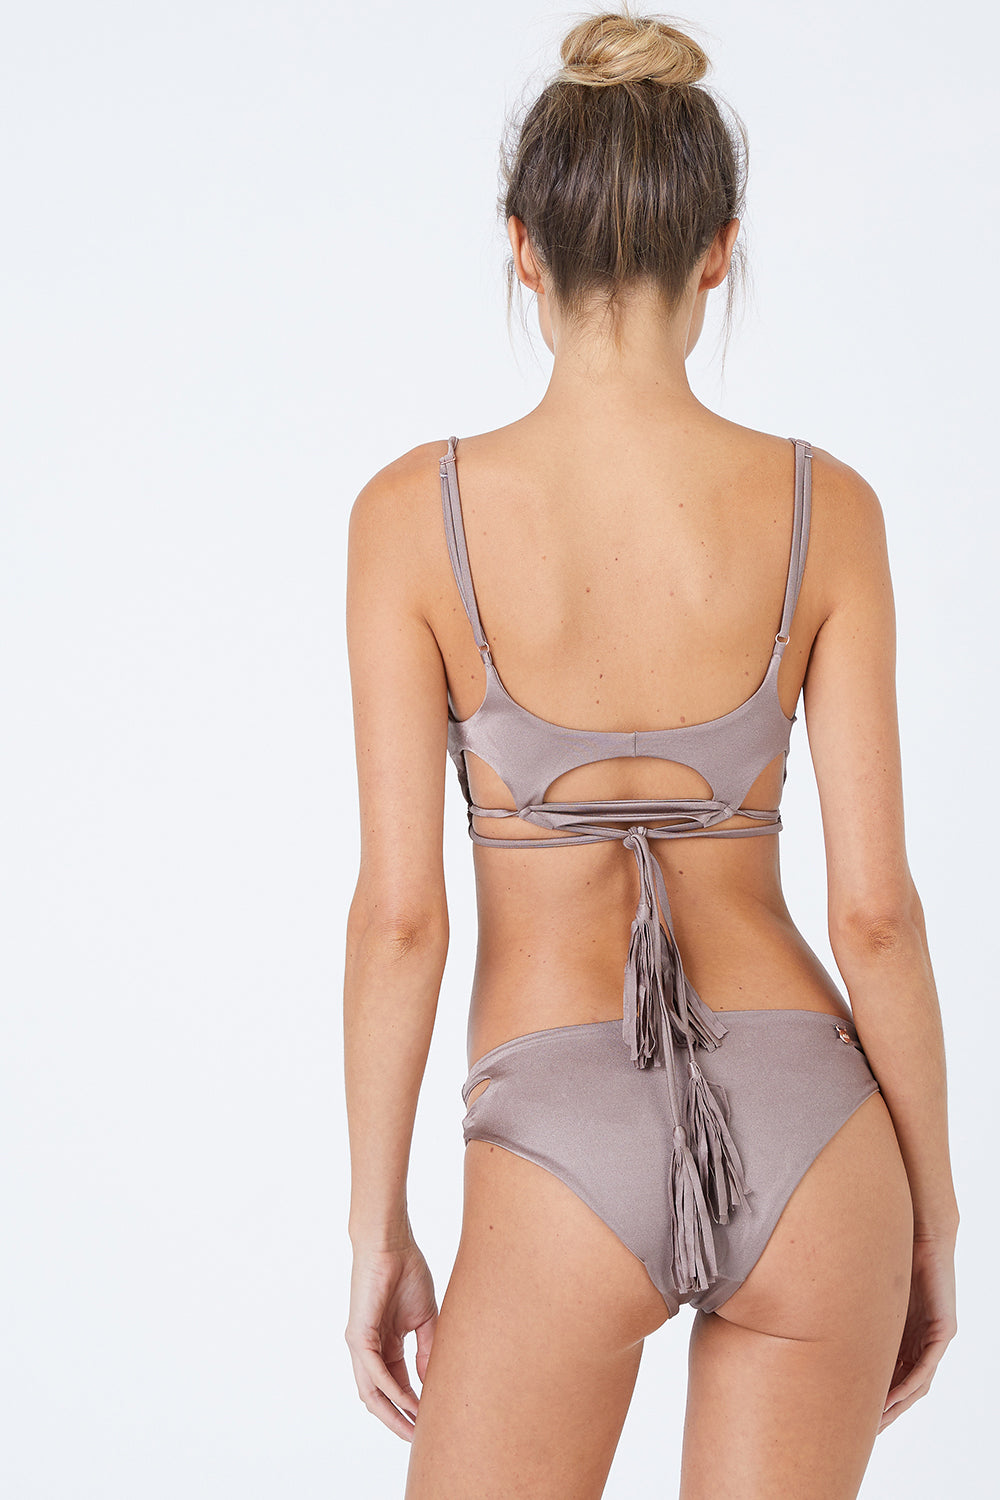 Cut Out Bikini Bottom - Sparkly Taupe Brown